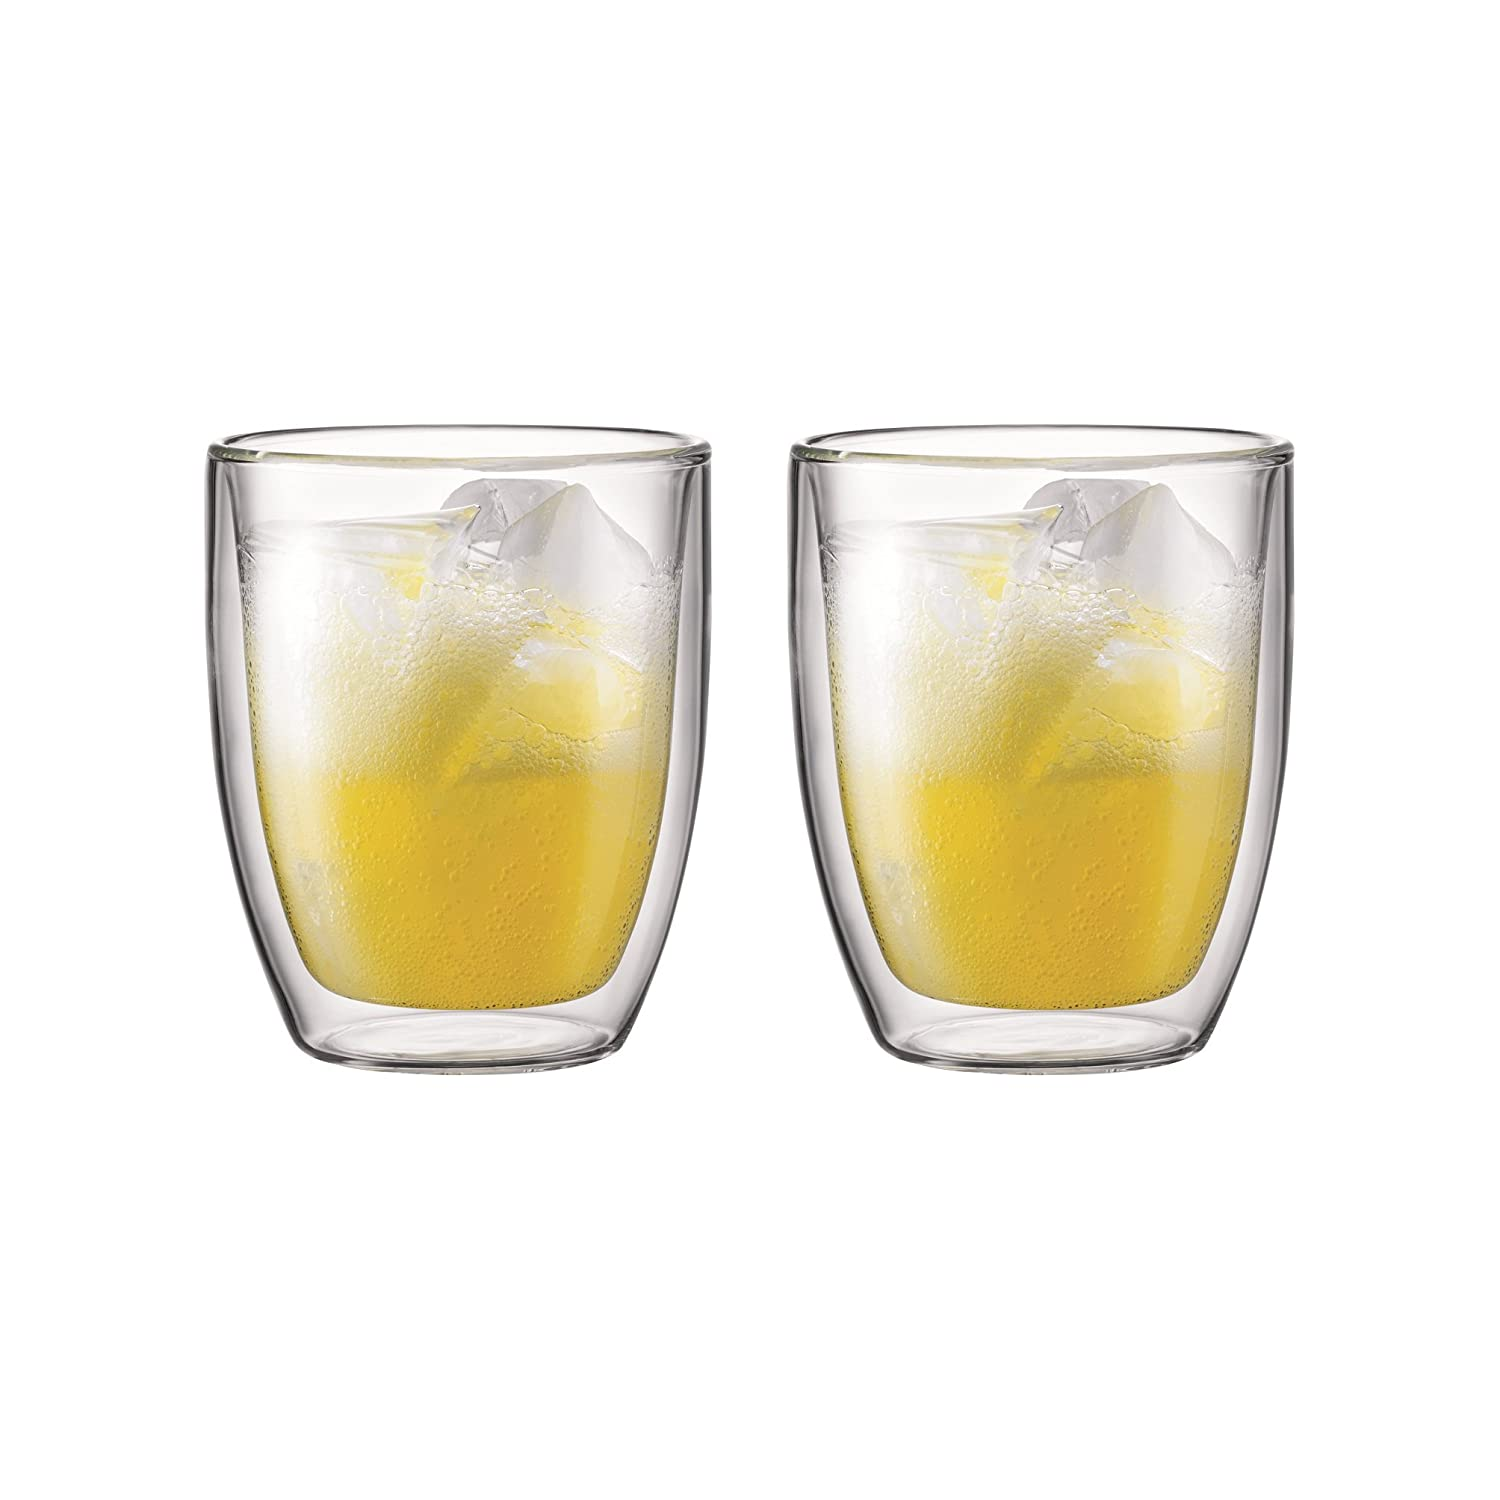 Bistro 10605-10 Bistro 2-Piece Glass, Double Wall, 0.45 L, 15 Oz BODUM